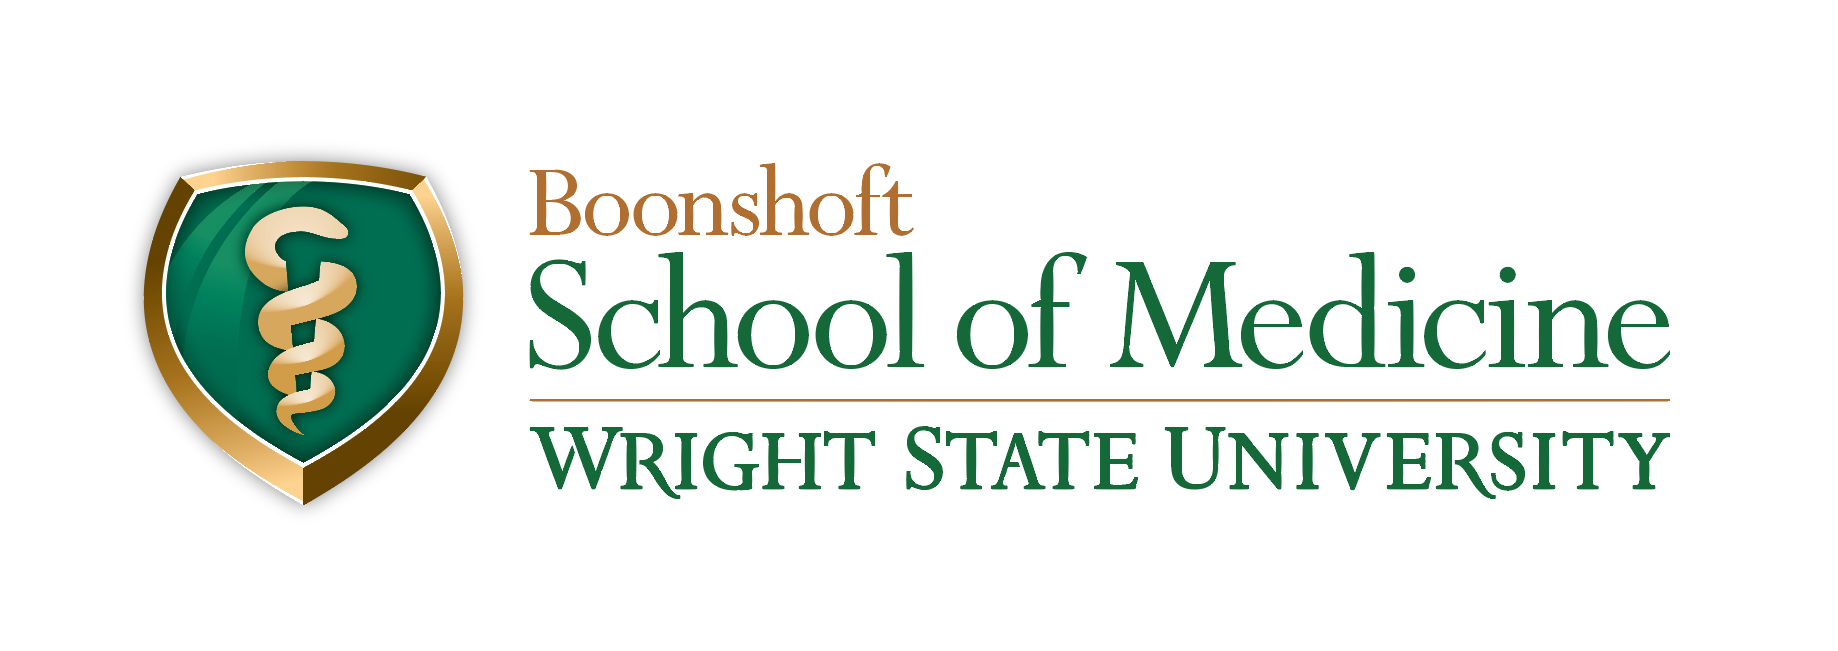 Brand Architecture - Boonshoft School of Medicine